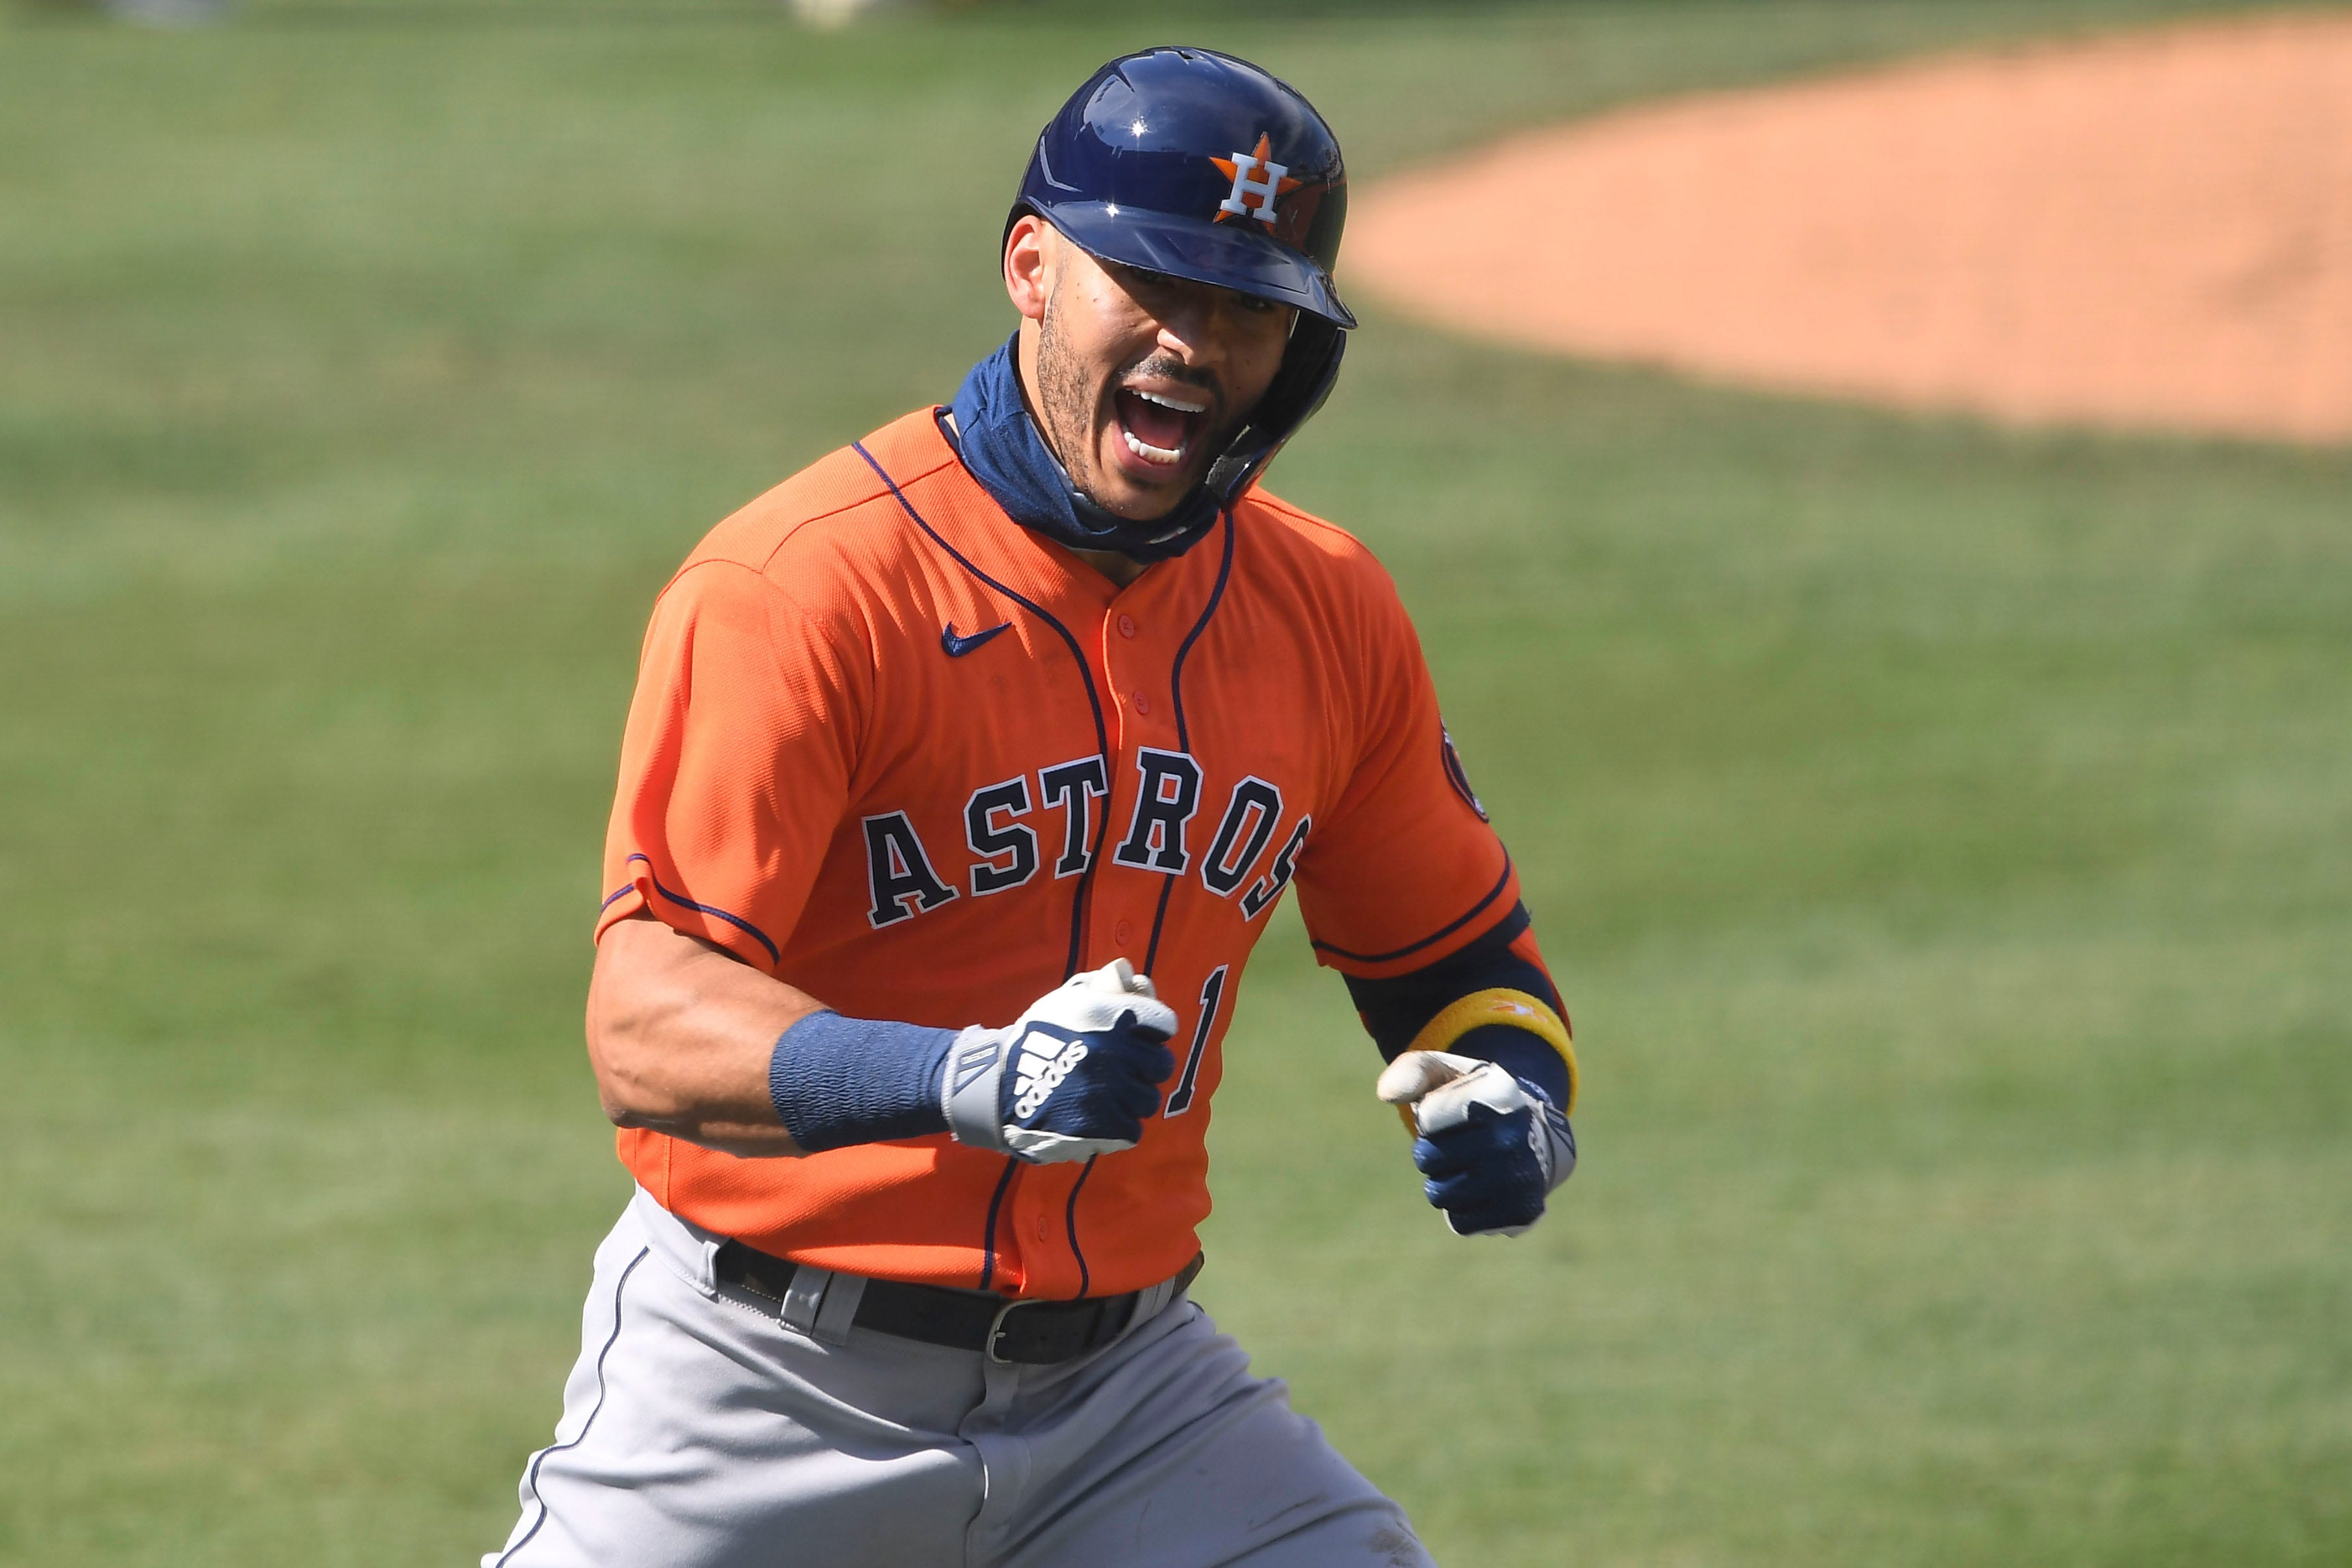 Carlos Correa, Astros overpower Athletics to win Game 1 of the ALDS